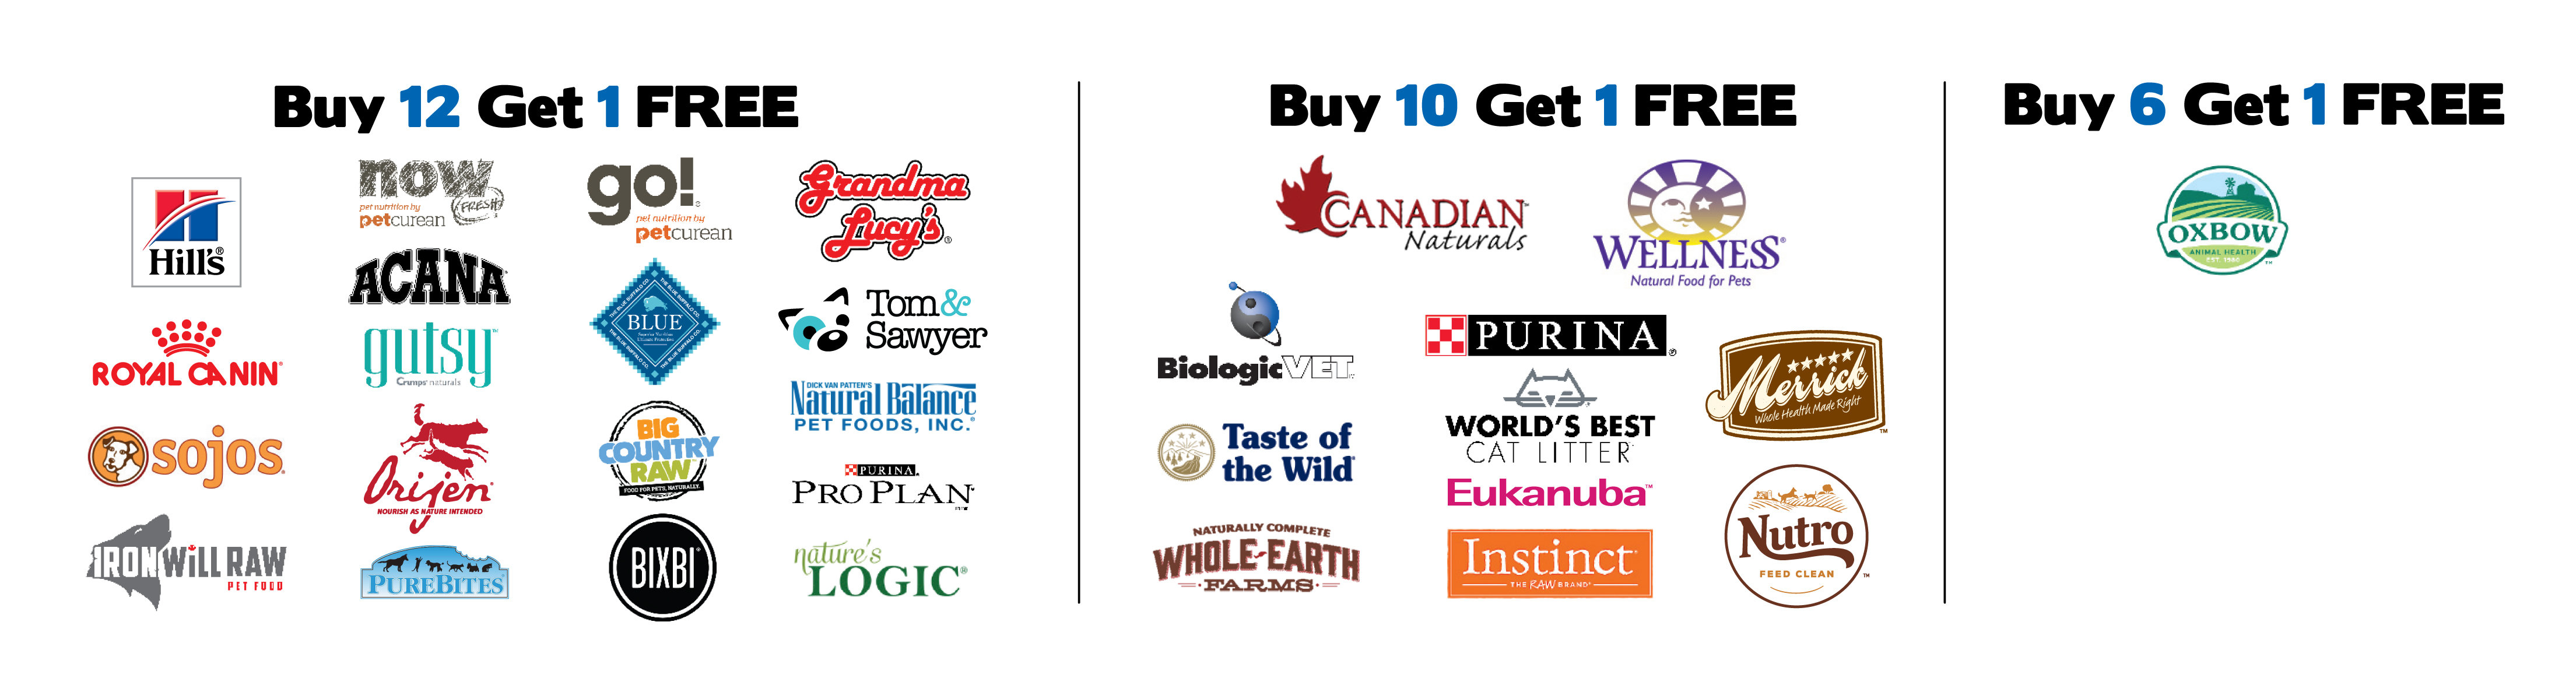 Buy 12 Get 1 Free: PureBites, Hill's Science Diet, Bixbi, Go! Grandma Lucy's, Royal Canin, NOW Fresh, Tom & Sawyer, Natural Balance, Orijen, Acana, Pro Plan, Sojos (excluding Simple Remedy), Iron Will Raw (excluding meal deals), Big Country Raw (4lbs boxes, 6lbs totes, and 12lbs Mini Grab & Go Only), Crumps' Naturals (Gutsy), Nature's Logic.  Buy 10 Get 1 Free: Canadian Naturals, Wellness, Blue Buffalo, Biologic, Purina, Merrick, Taste of the Wild, World's Best, Eukanuba, Whole Earth Farms, Instinct, Nutro. Buy 6 Get 1 Free: Oxbow.